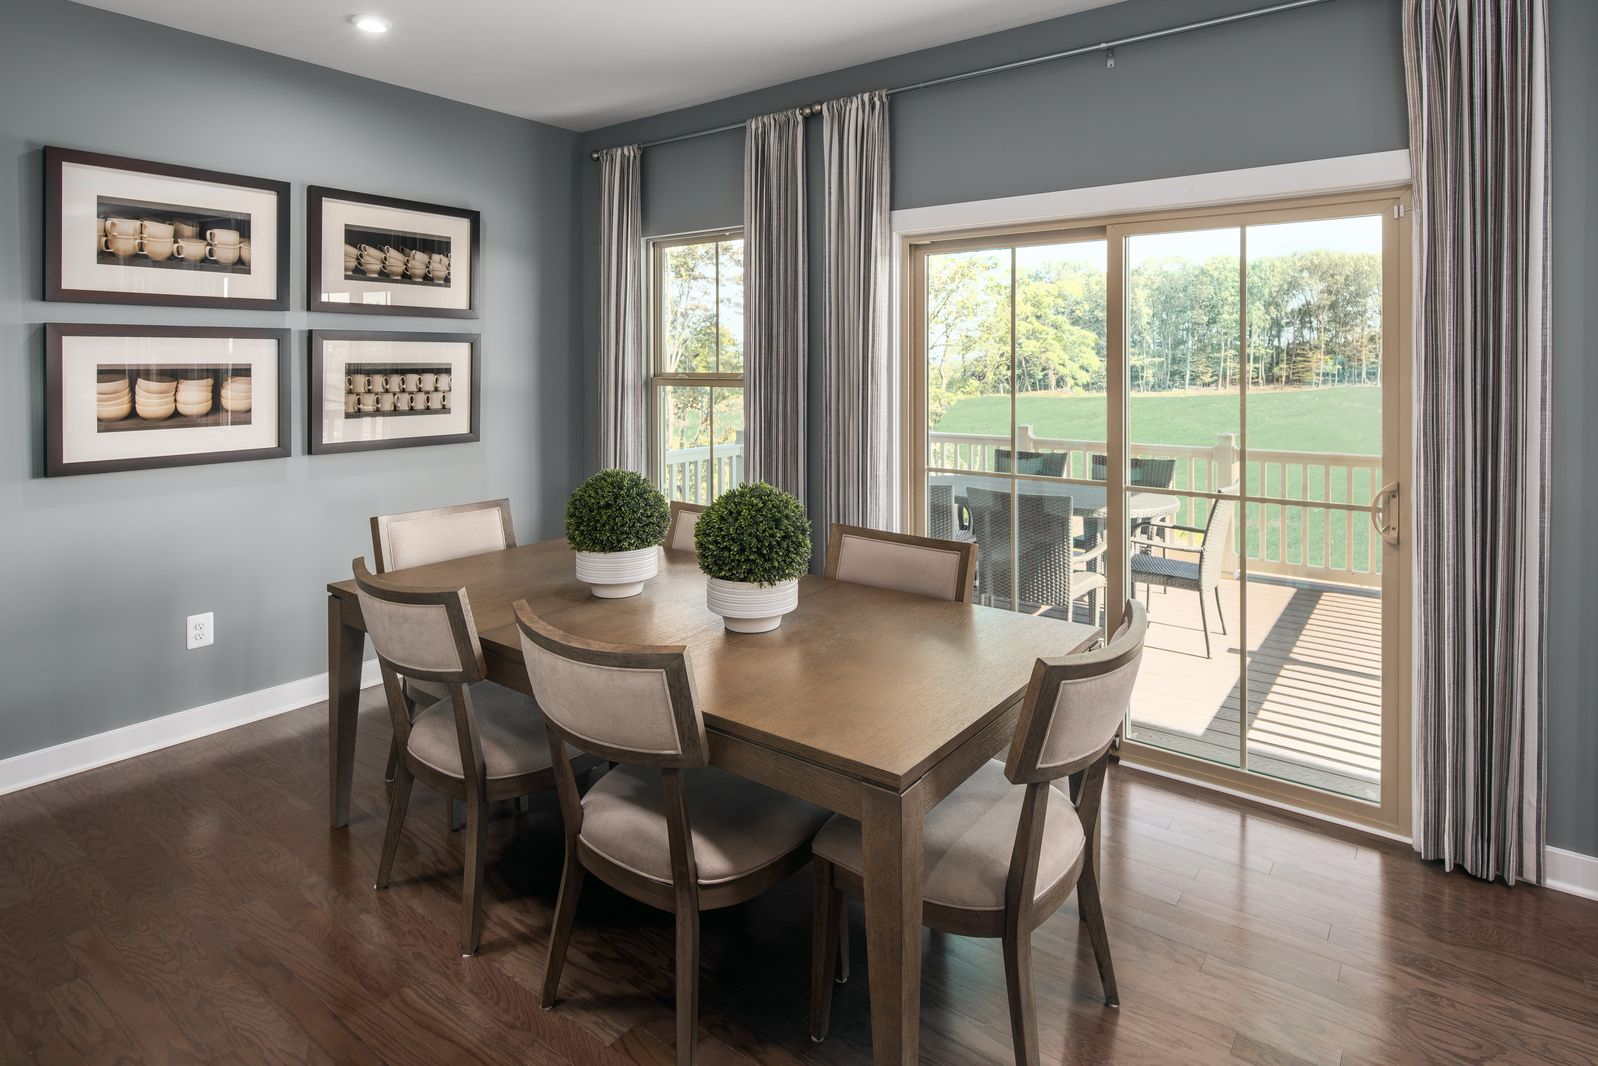 Living Area featured in the Roanoke By Ryan Homes in Akron, OH